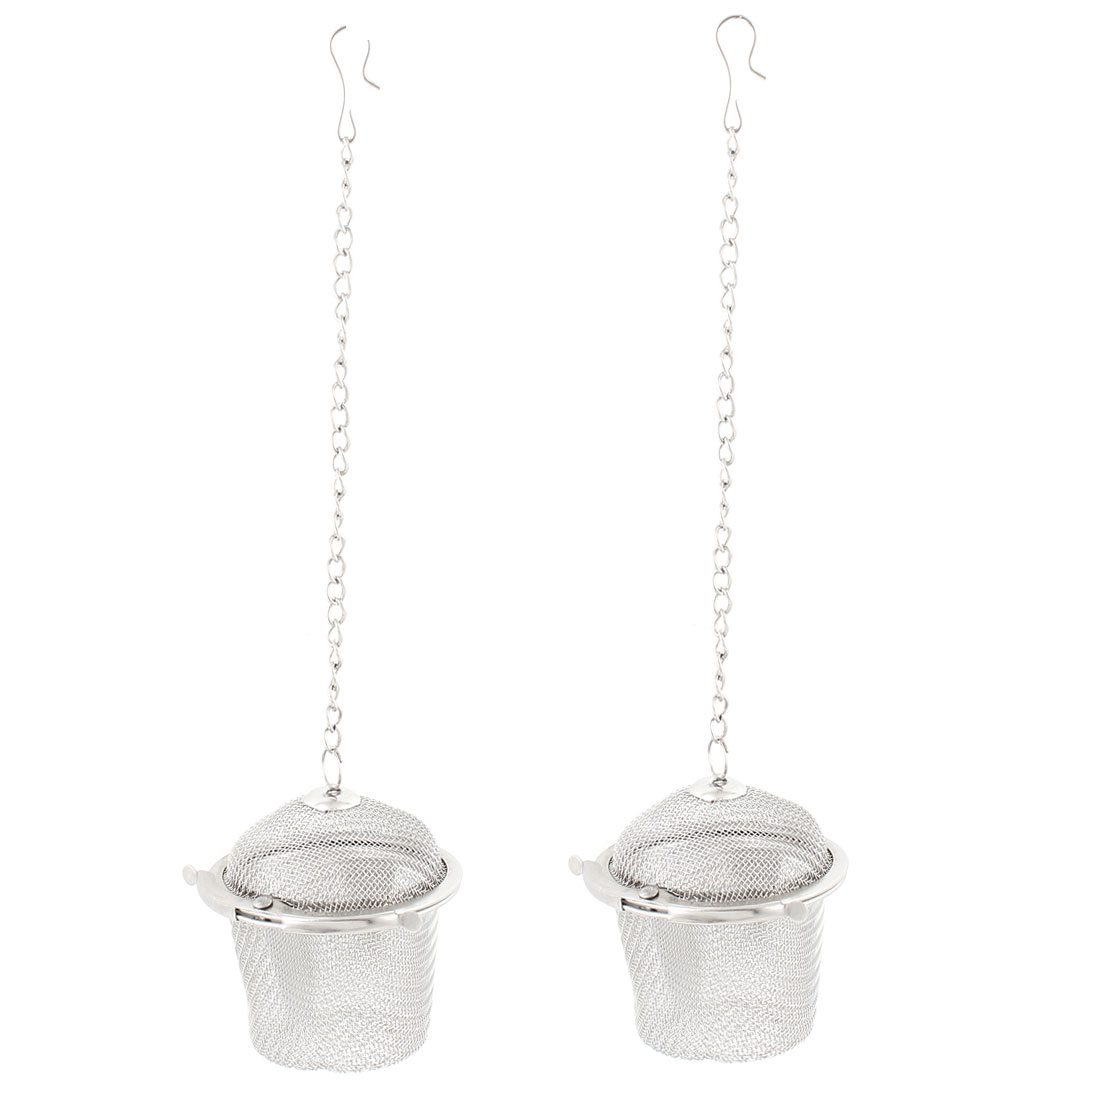 Stainless Steel Locking Chain Mesh Ball Strainer Tea Leaf Spice Infuser 2pcs